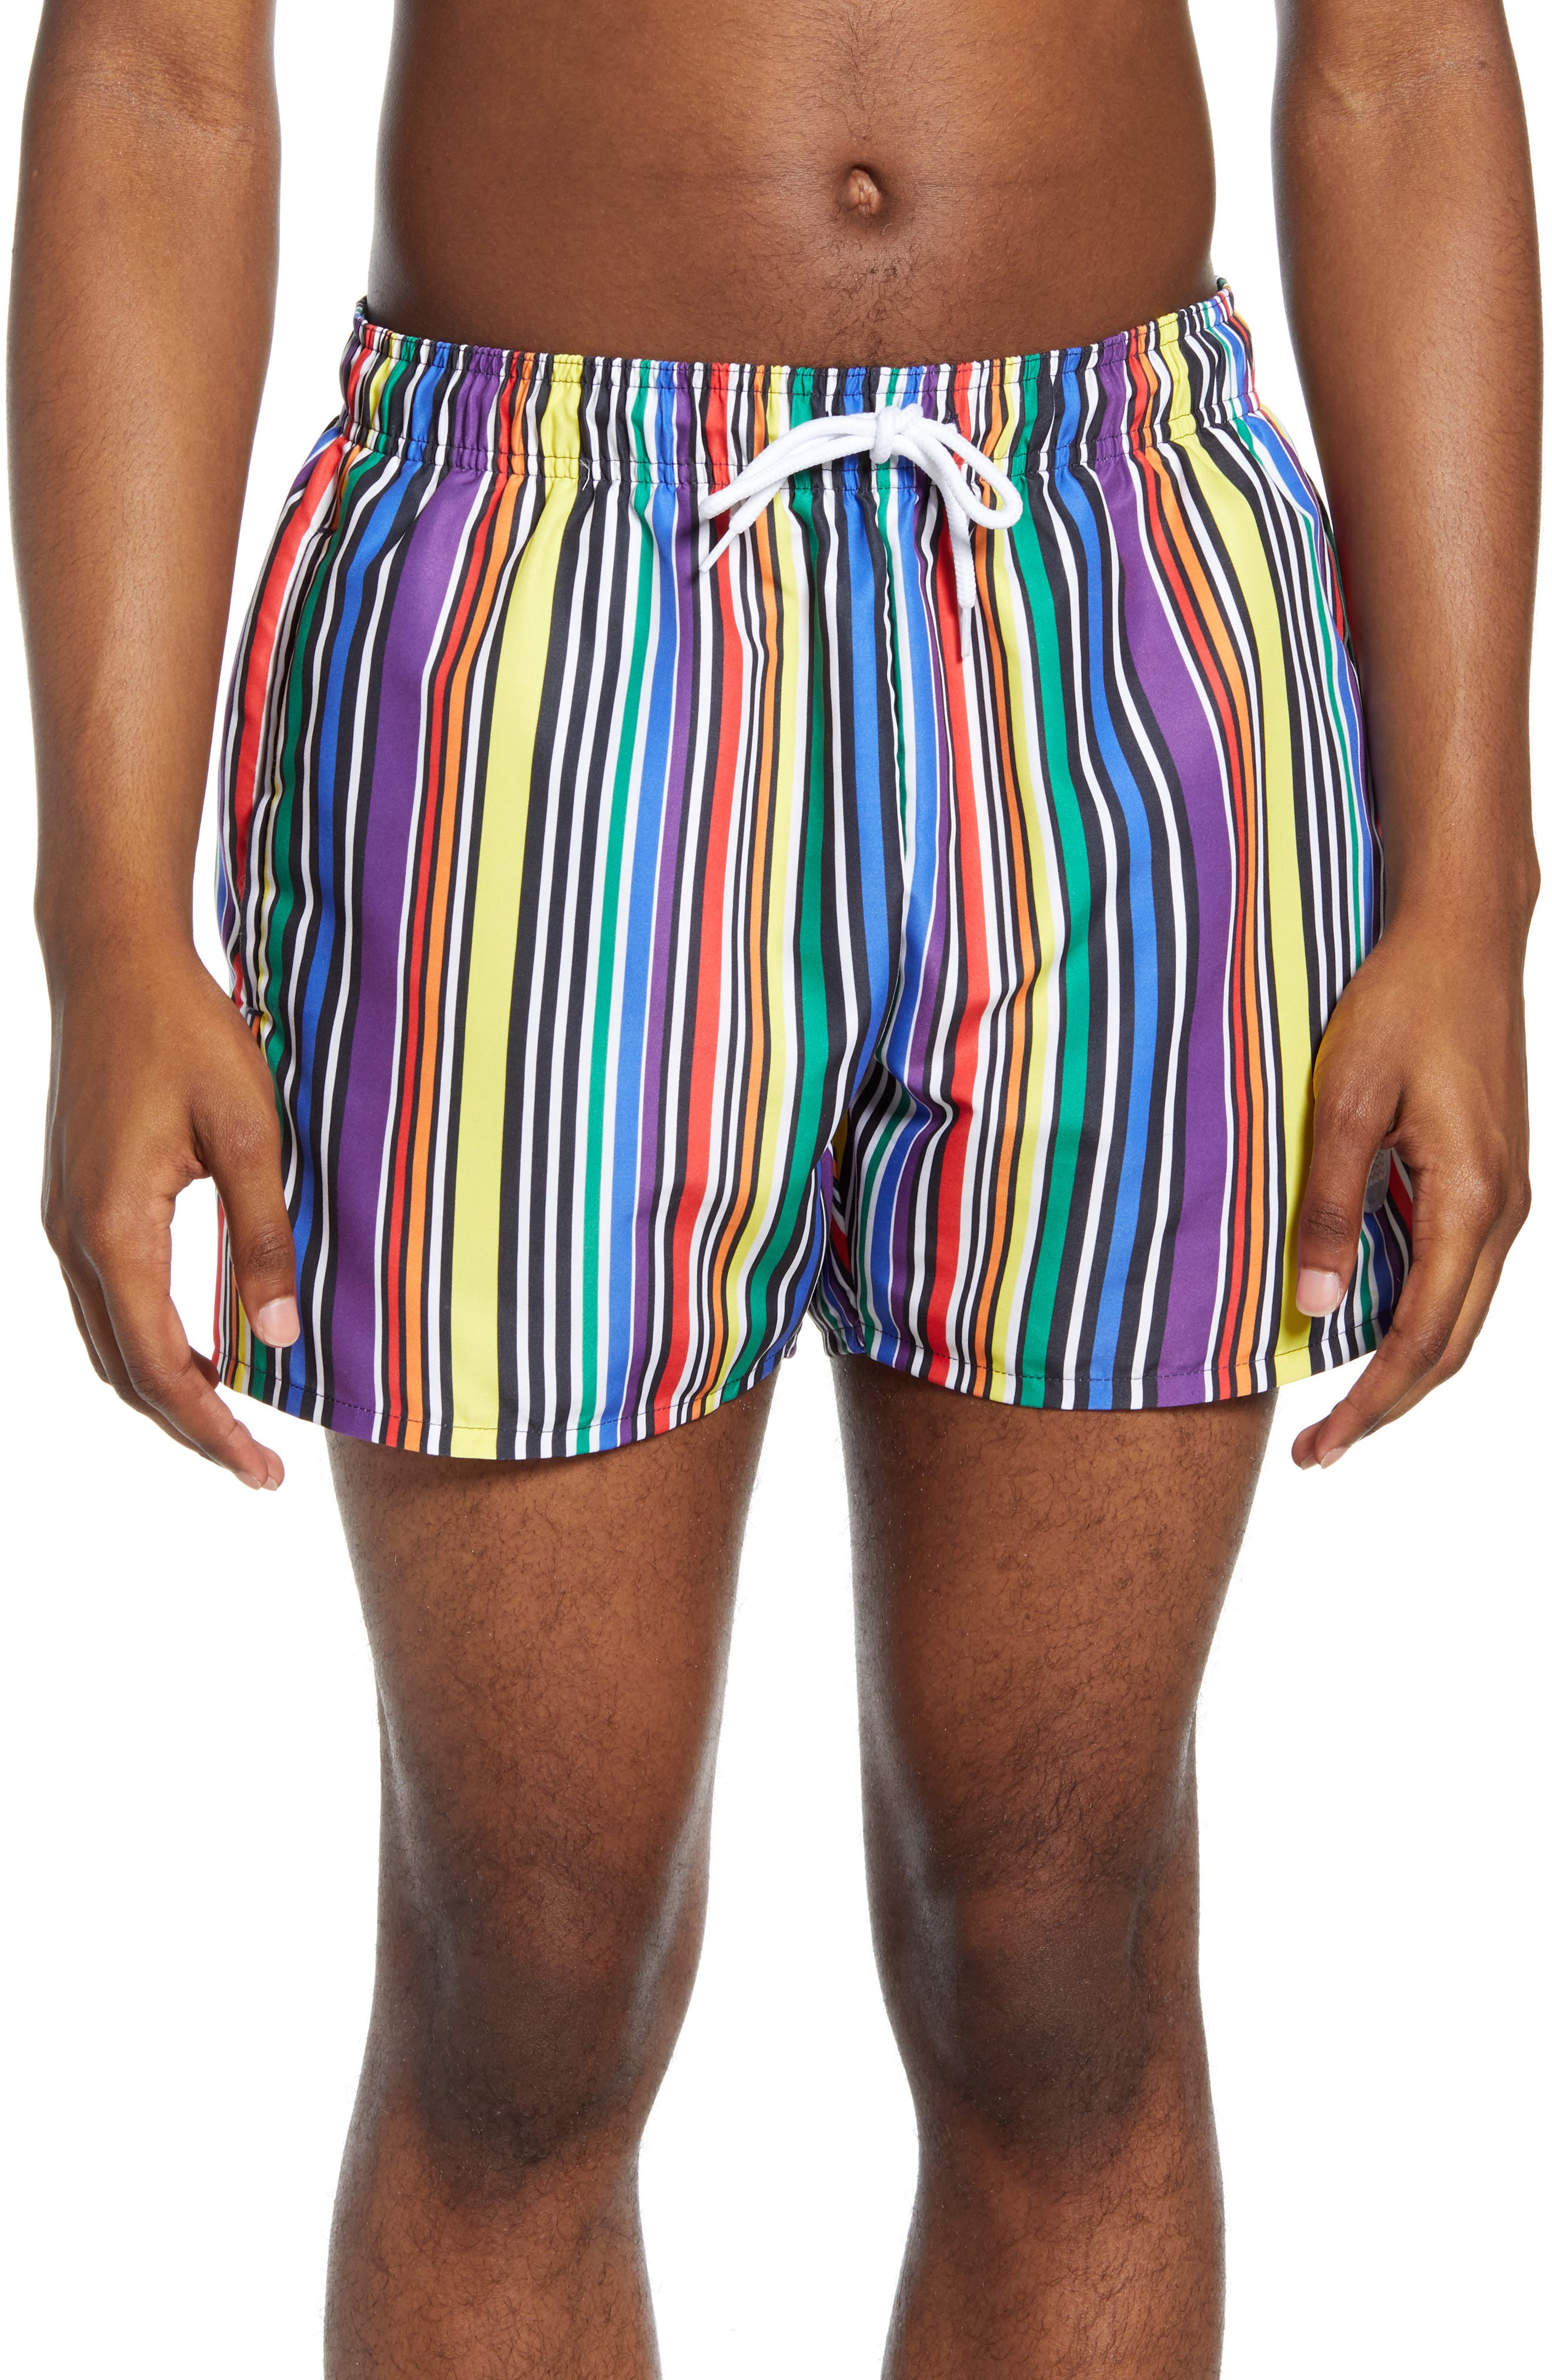 Vintage Men's Swimsuits – 1930s to 1970s History Mens Topman Pride Stripe Swim Trunks $20.90 AT vintagedancer.com